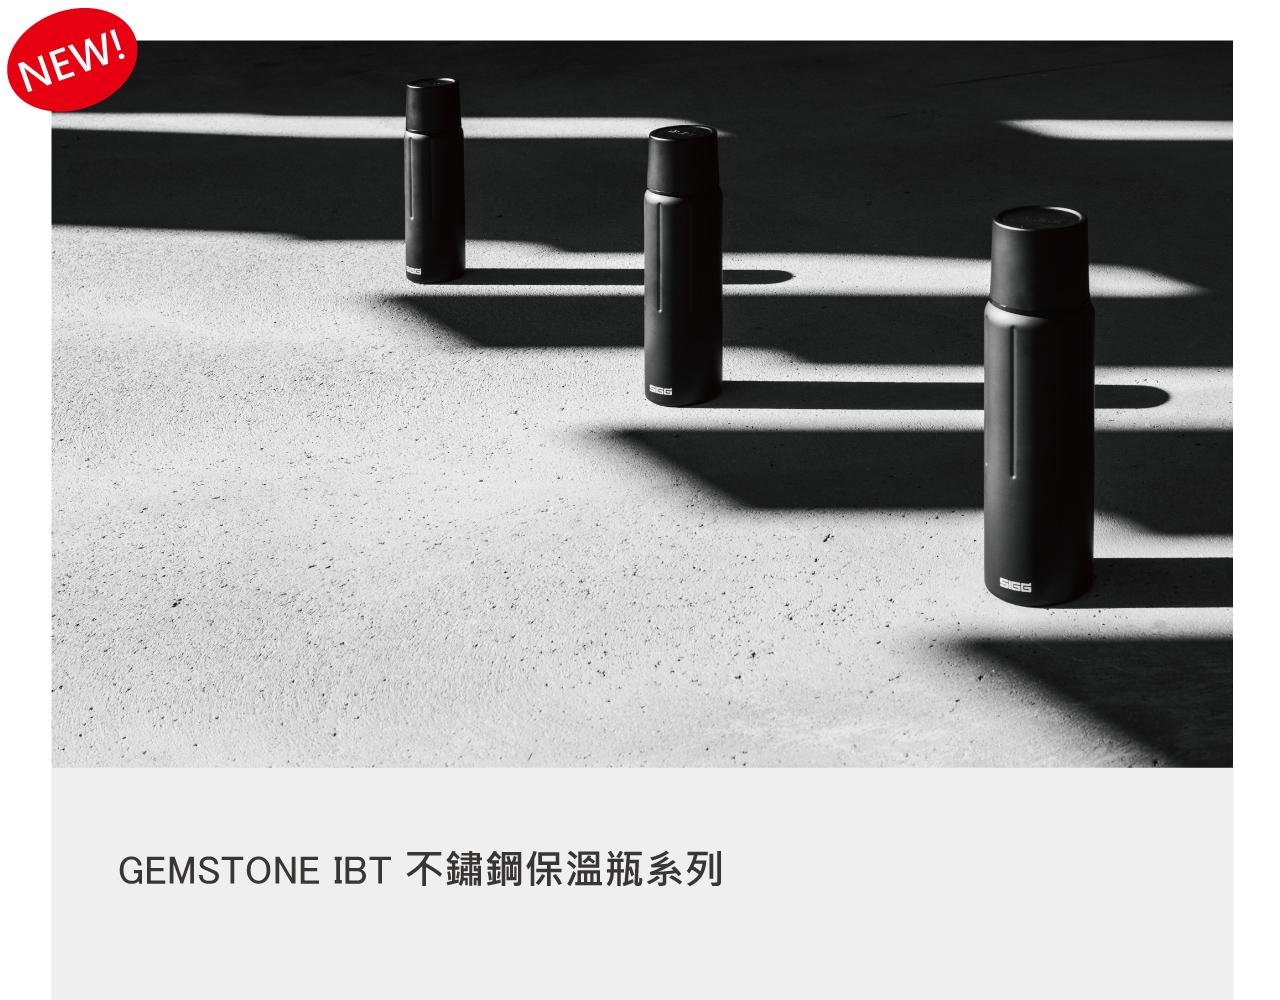 GEMSTONE IBT-1